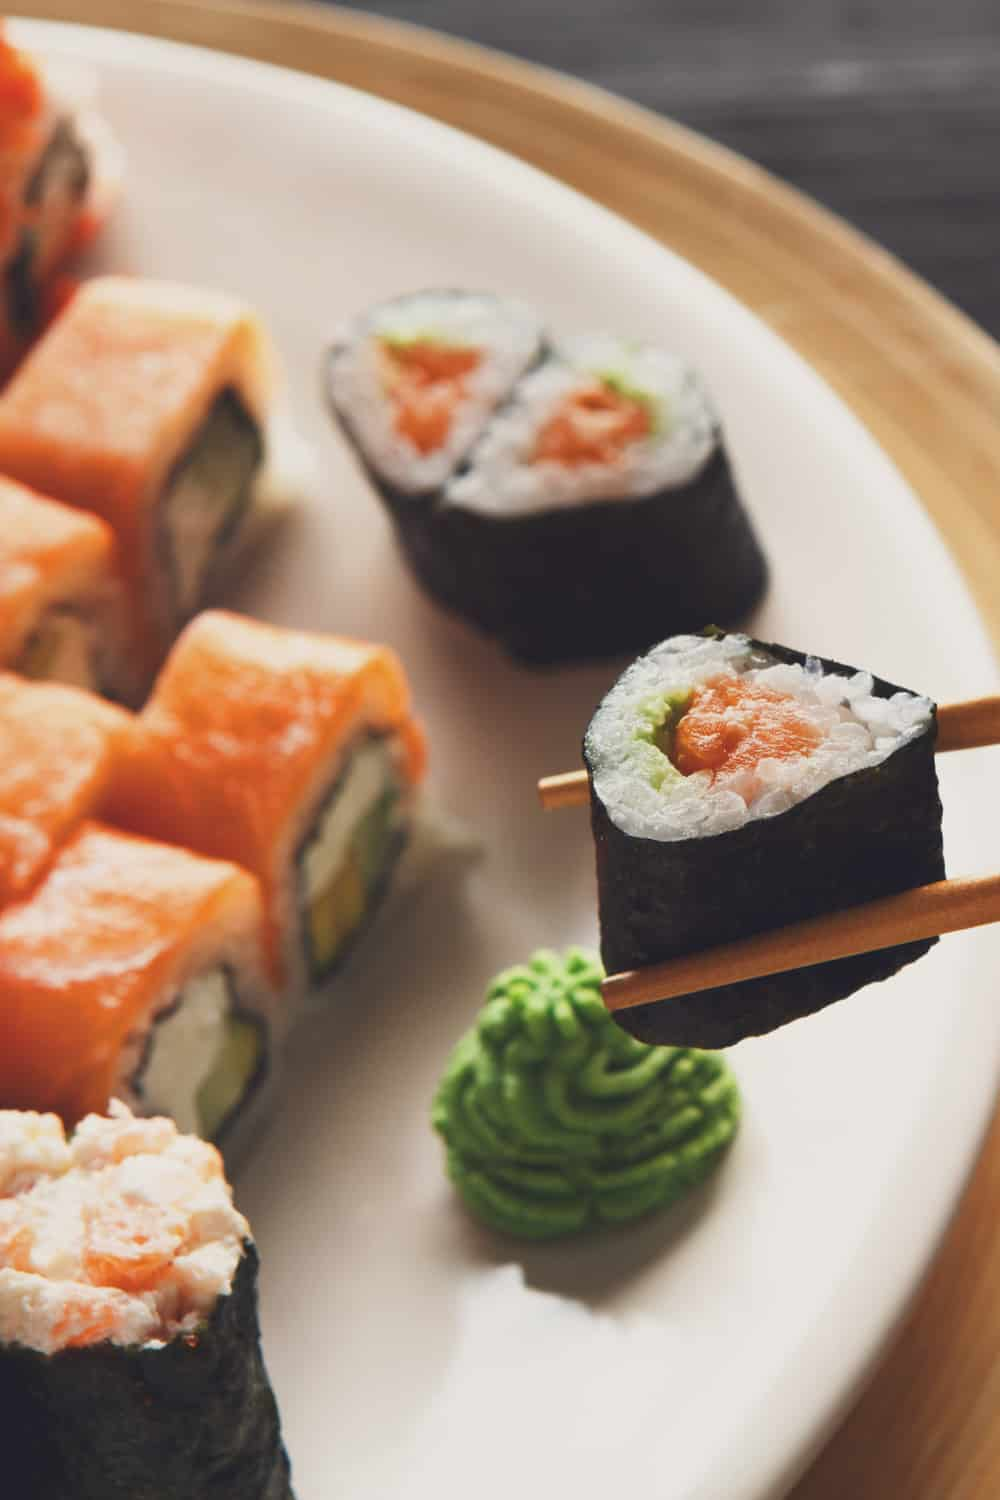 The Risk of Consuming Expired Wasabi